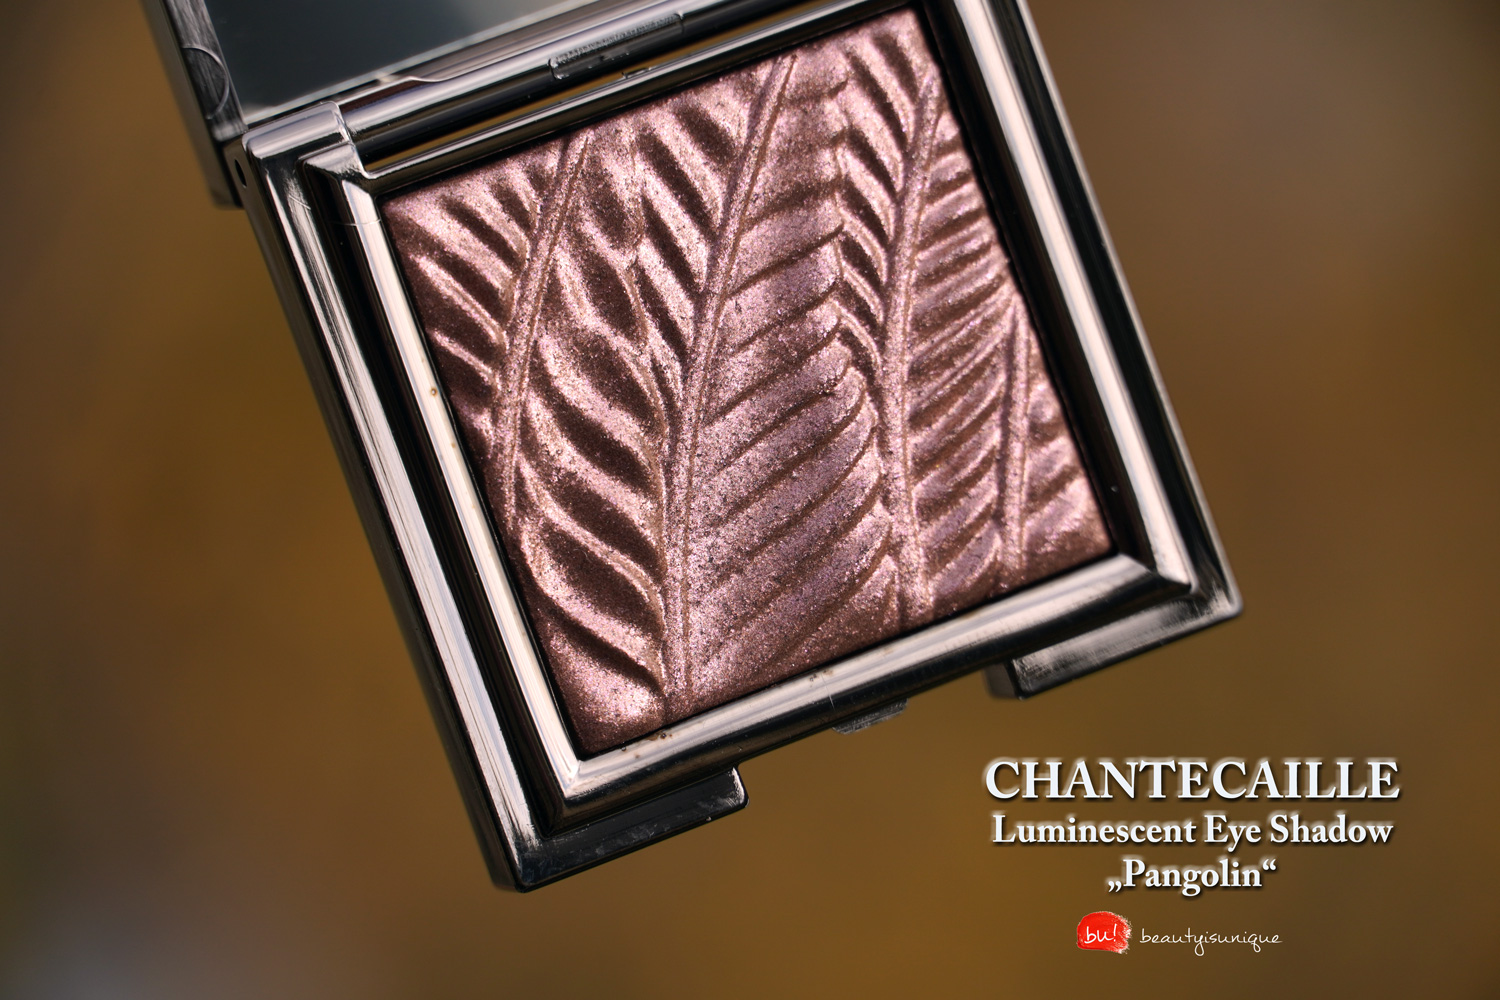 chantecaille-luminescent-eye-shadow-pamgolin